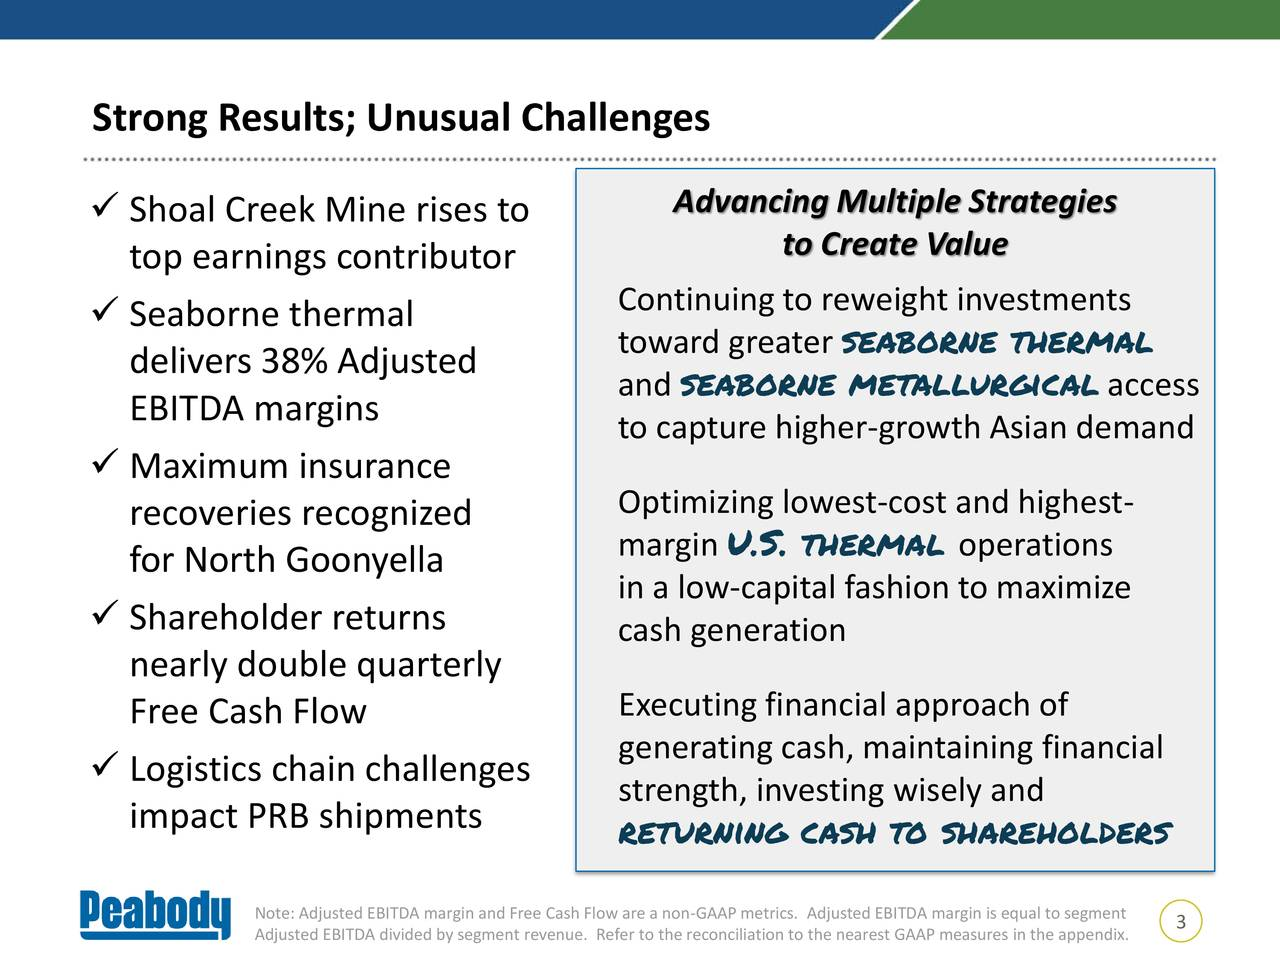 ✓ Shoal Creek Mine rises to Advancing Multiple Strategies to Create Value top earnings contributor ✓ Seaborne thermal Continuing to reweight investments delivers 38% Adjusted toward greater seaborne thermal and seaborne metallurgical access EBITDA margins to capture higher-growth Asian demand ✓ Maximum insurance Optimizing lowest-cost and highest- recoveries recognized for North Goonyella margin U.S. thermal operations in a low-capital fashion to maximize ✓ Shareholder returns cash generation nearly double quarterly Free Cash Flow Executing financial approach of generating cash, maintaining financial ✓ Logistics chain challenges impact PRB shipments strength, investing wisely and returning cash to shareholders Adjusted EBITDA divided by segment revenue. Refer to the reconciliation to the nearest GAAP measures in the appendix.